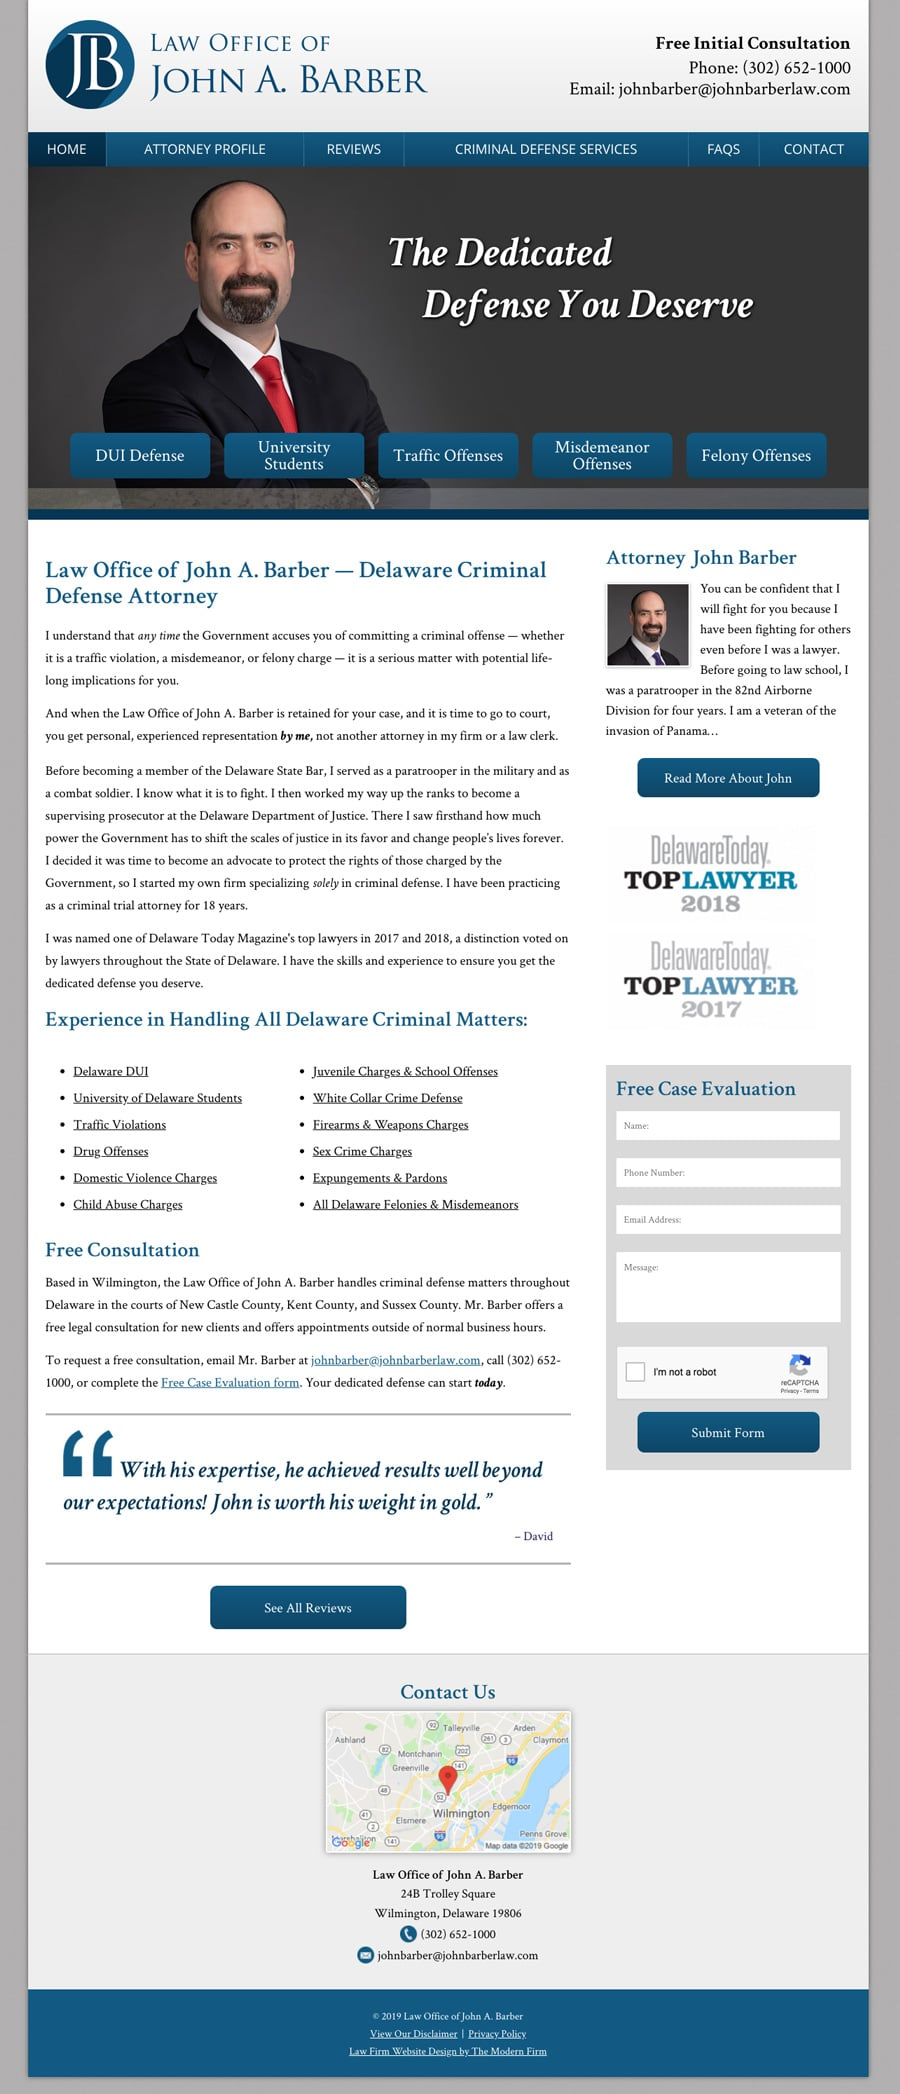 Law Firm Website Design for Law Office of John A. Barber